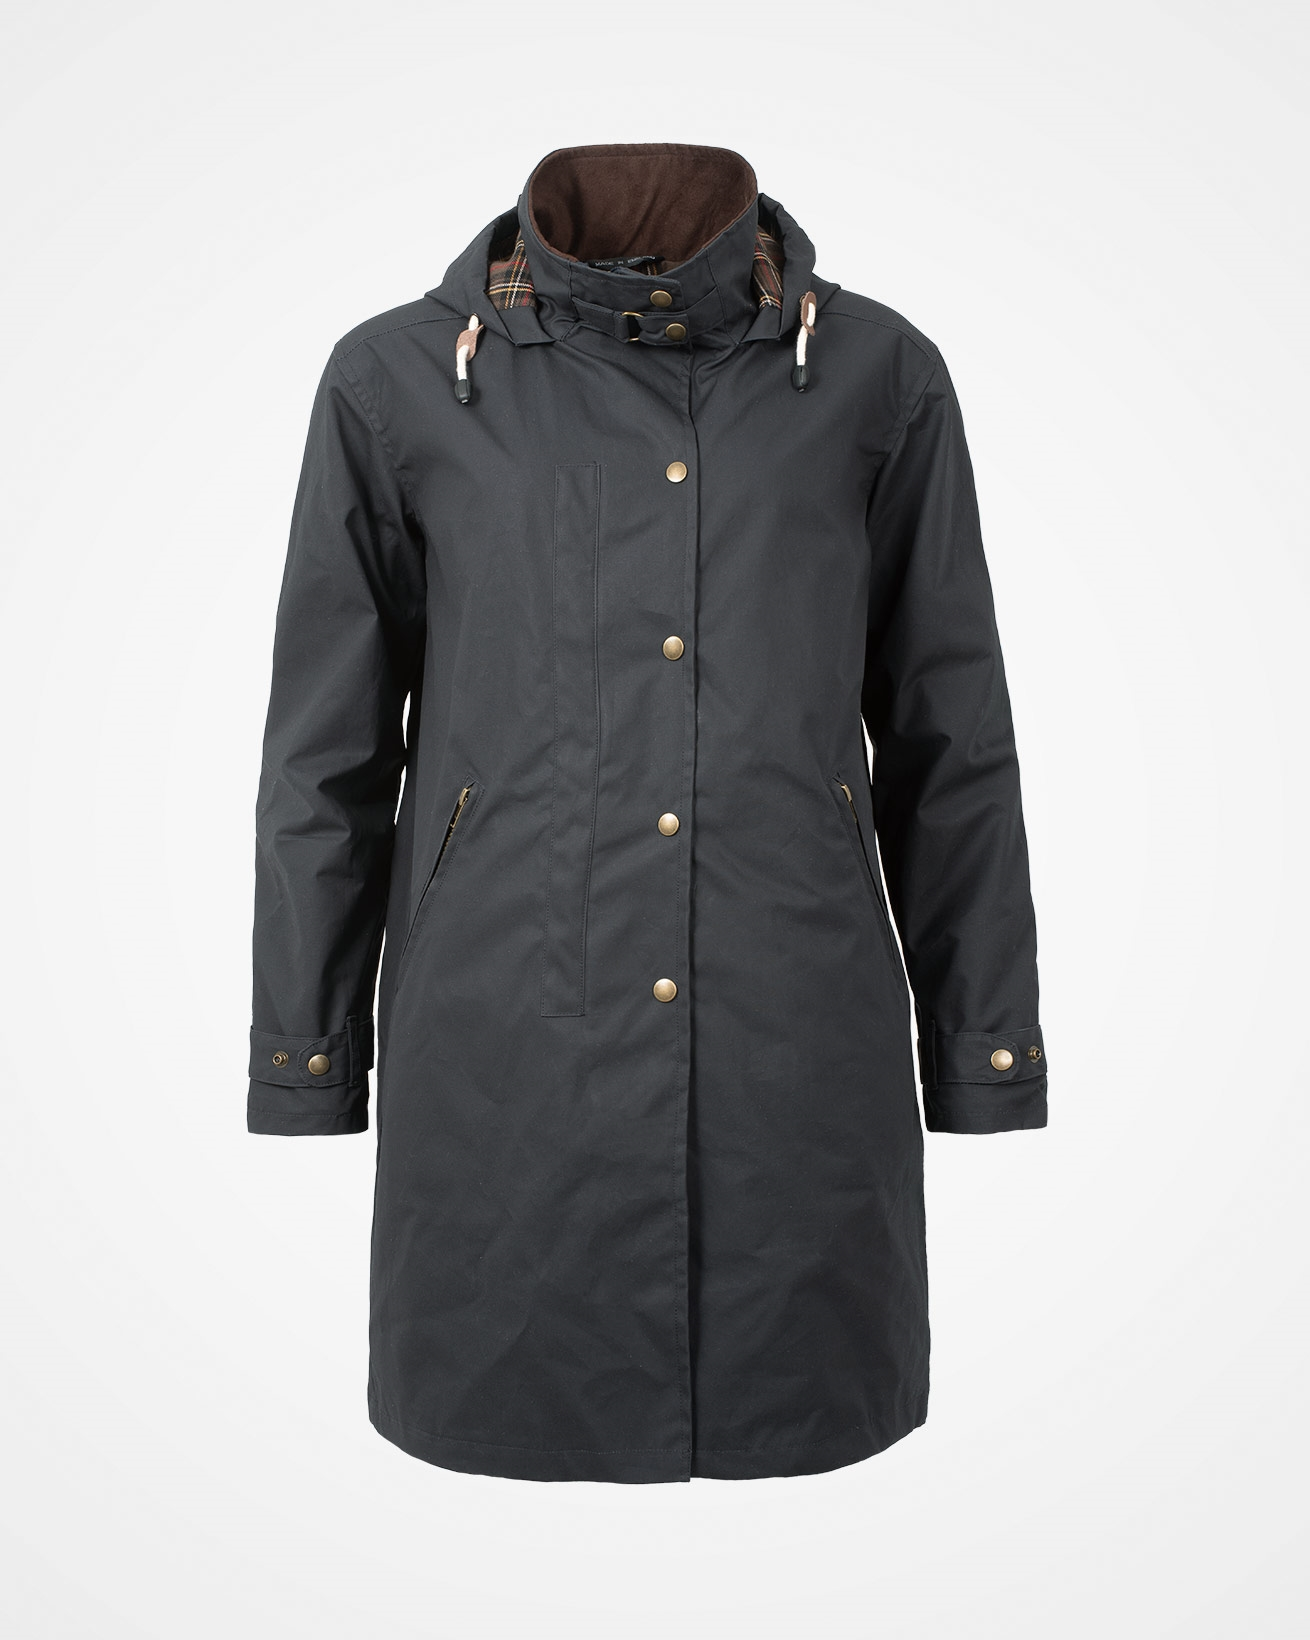 7710_stay-wax-cotton-parka_dark-navy_front2.jpg